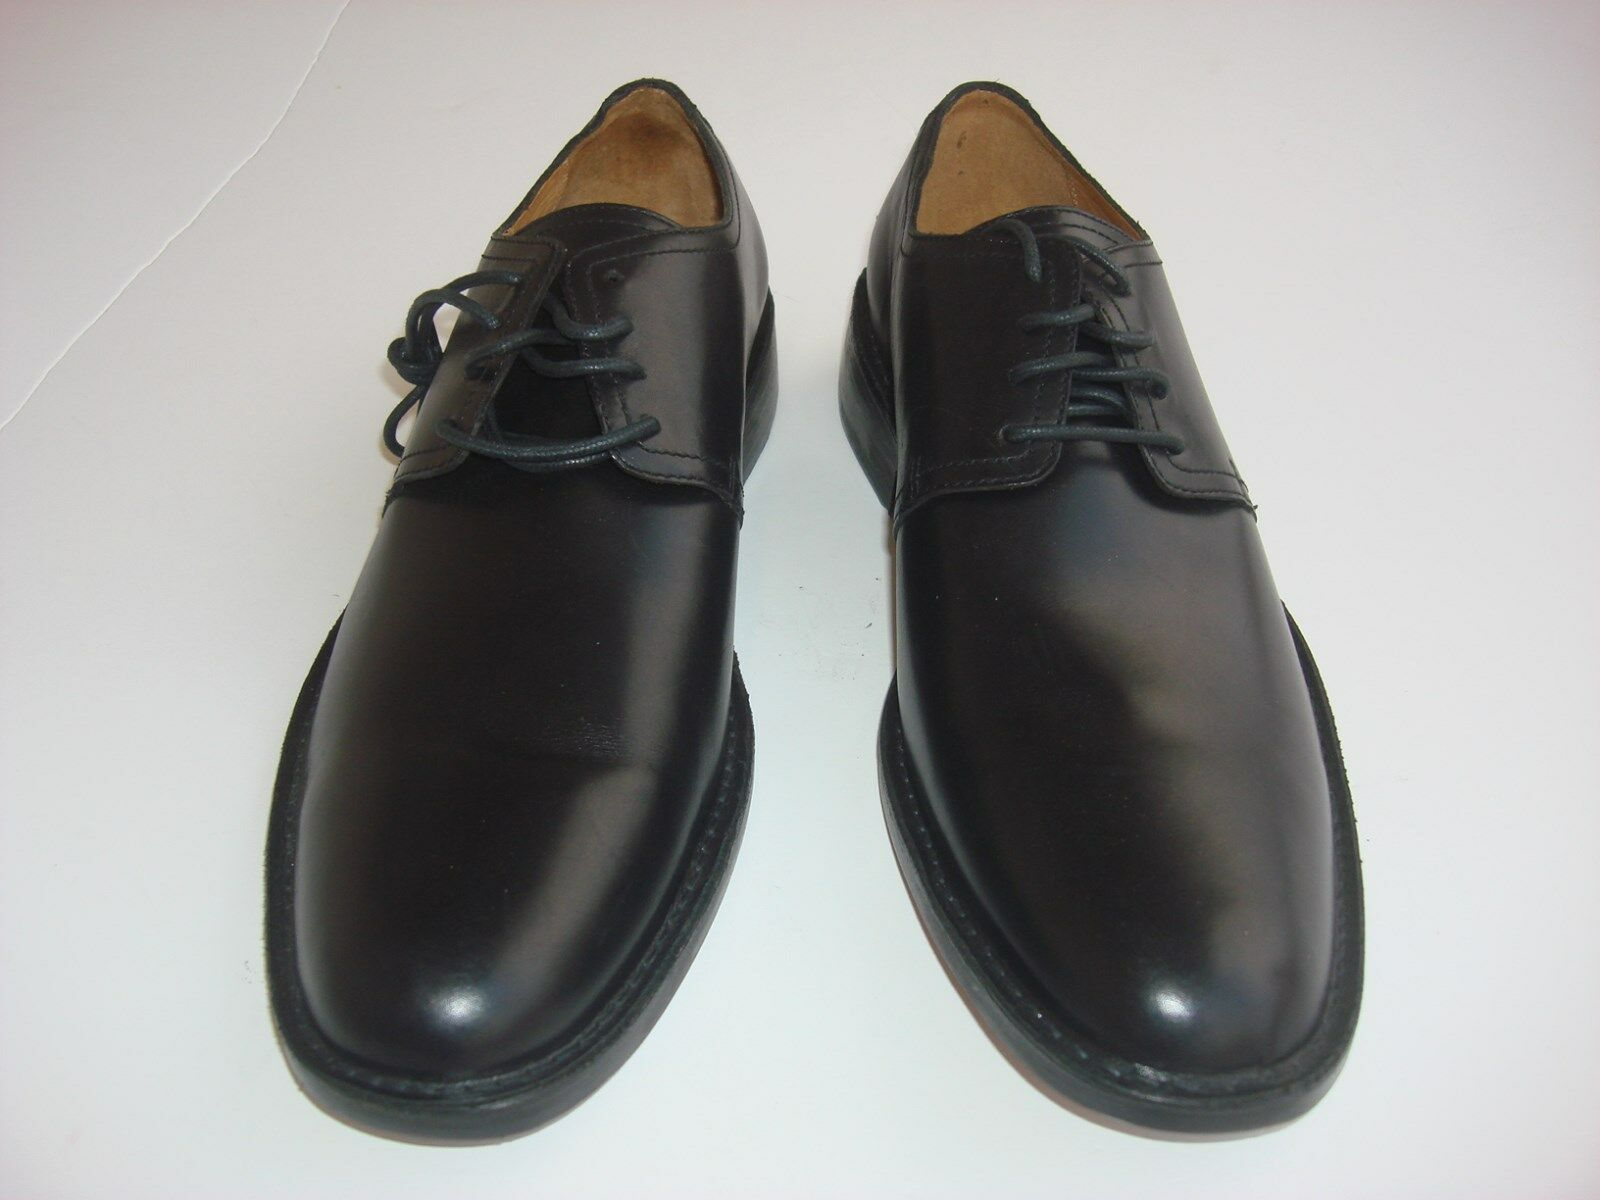 COLE HAAN? SHOES - CLASSIC & STYLISH ( SIZE 13 ) CO5411 - NEW